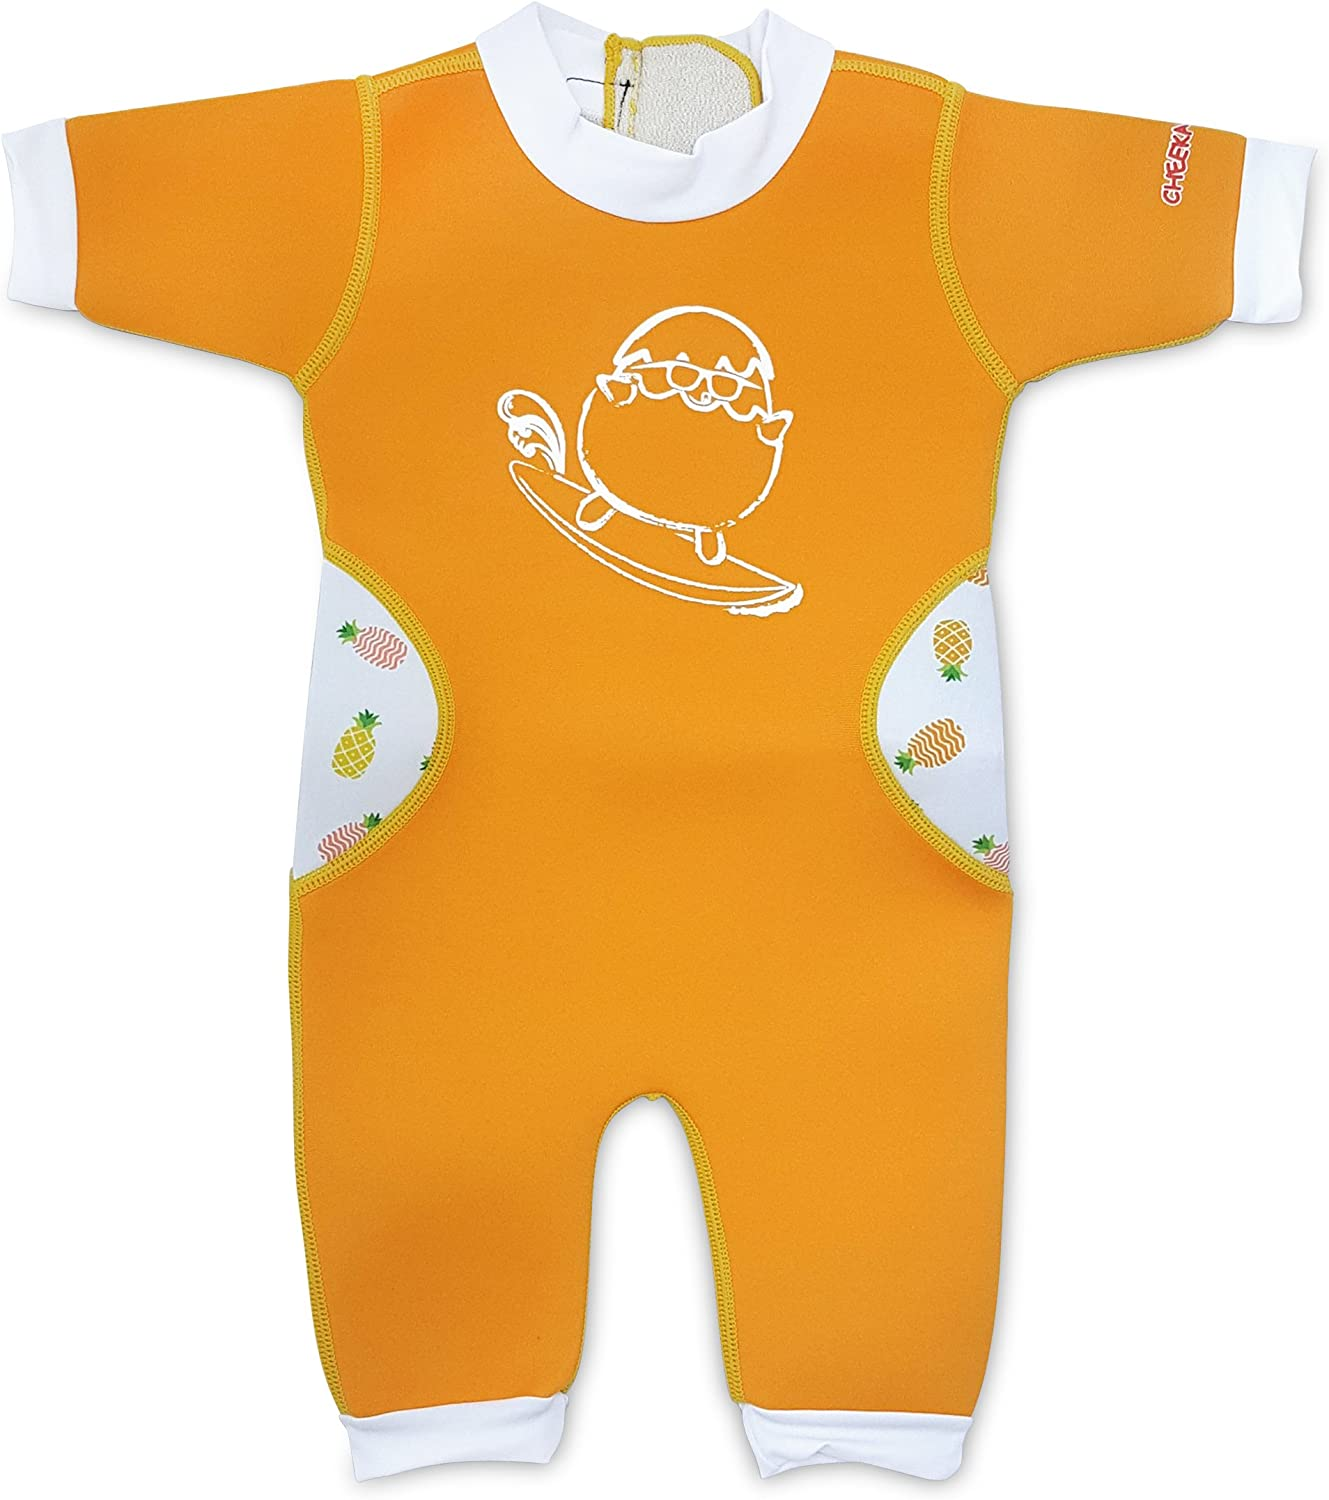 Cheekaaboo Warmiebabes Baby & Kids One Piece Swimsuit for Boys and Girls, 6-48 Months